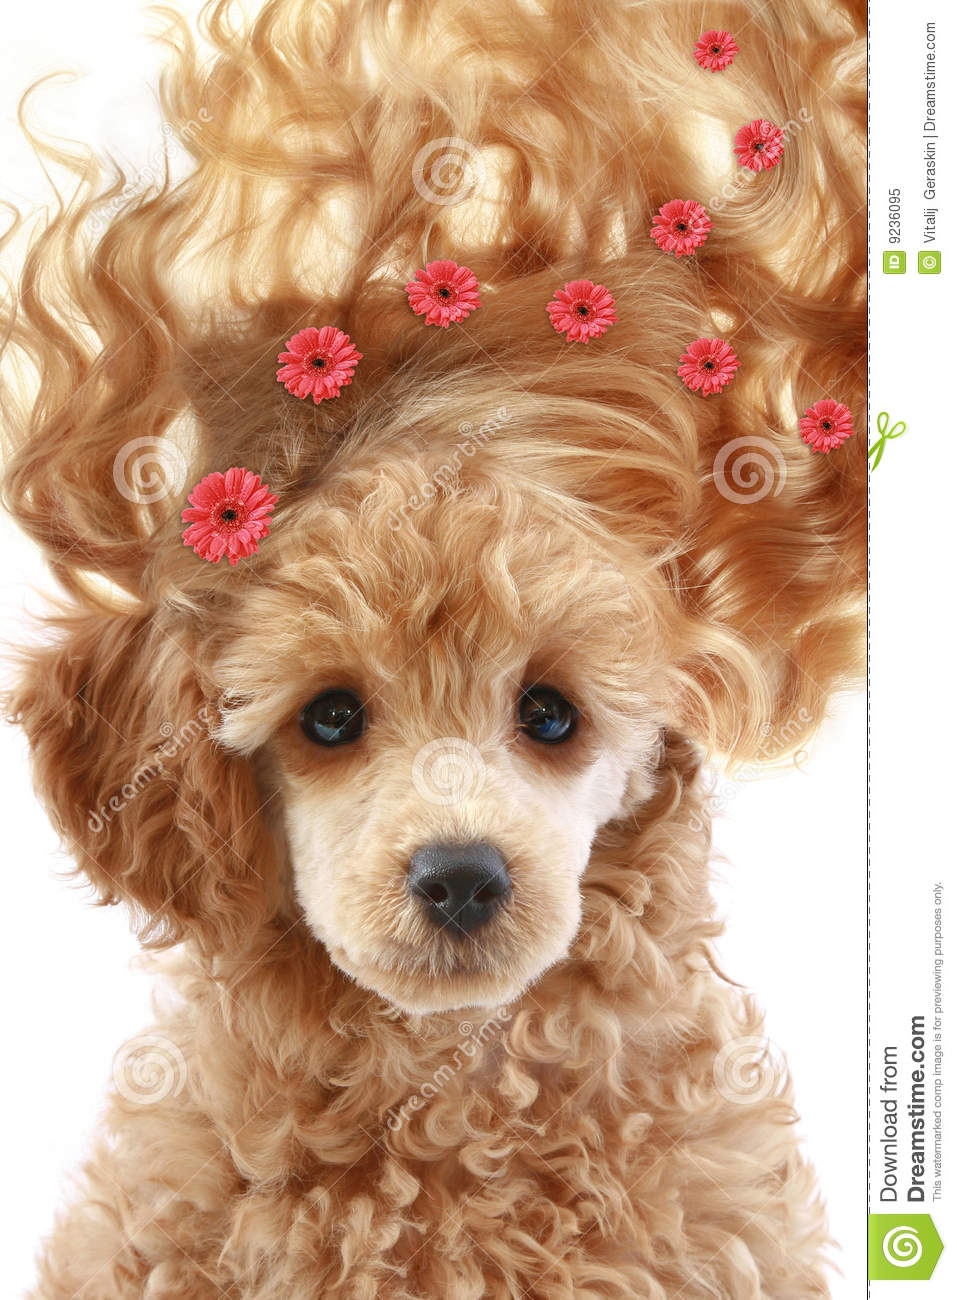 Poodle puppy with long hair